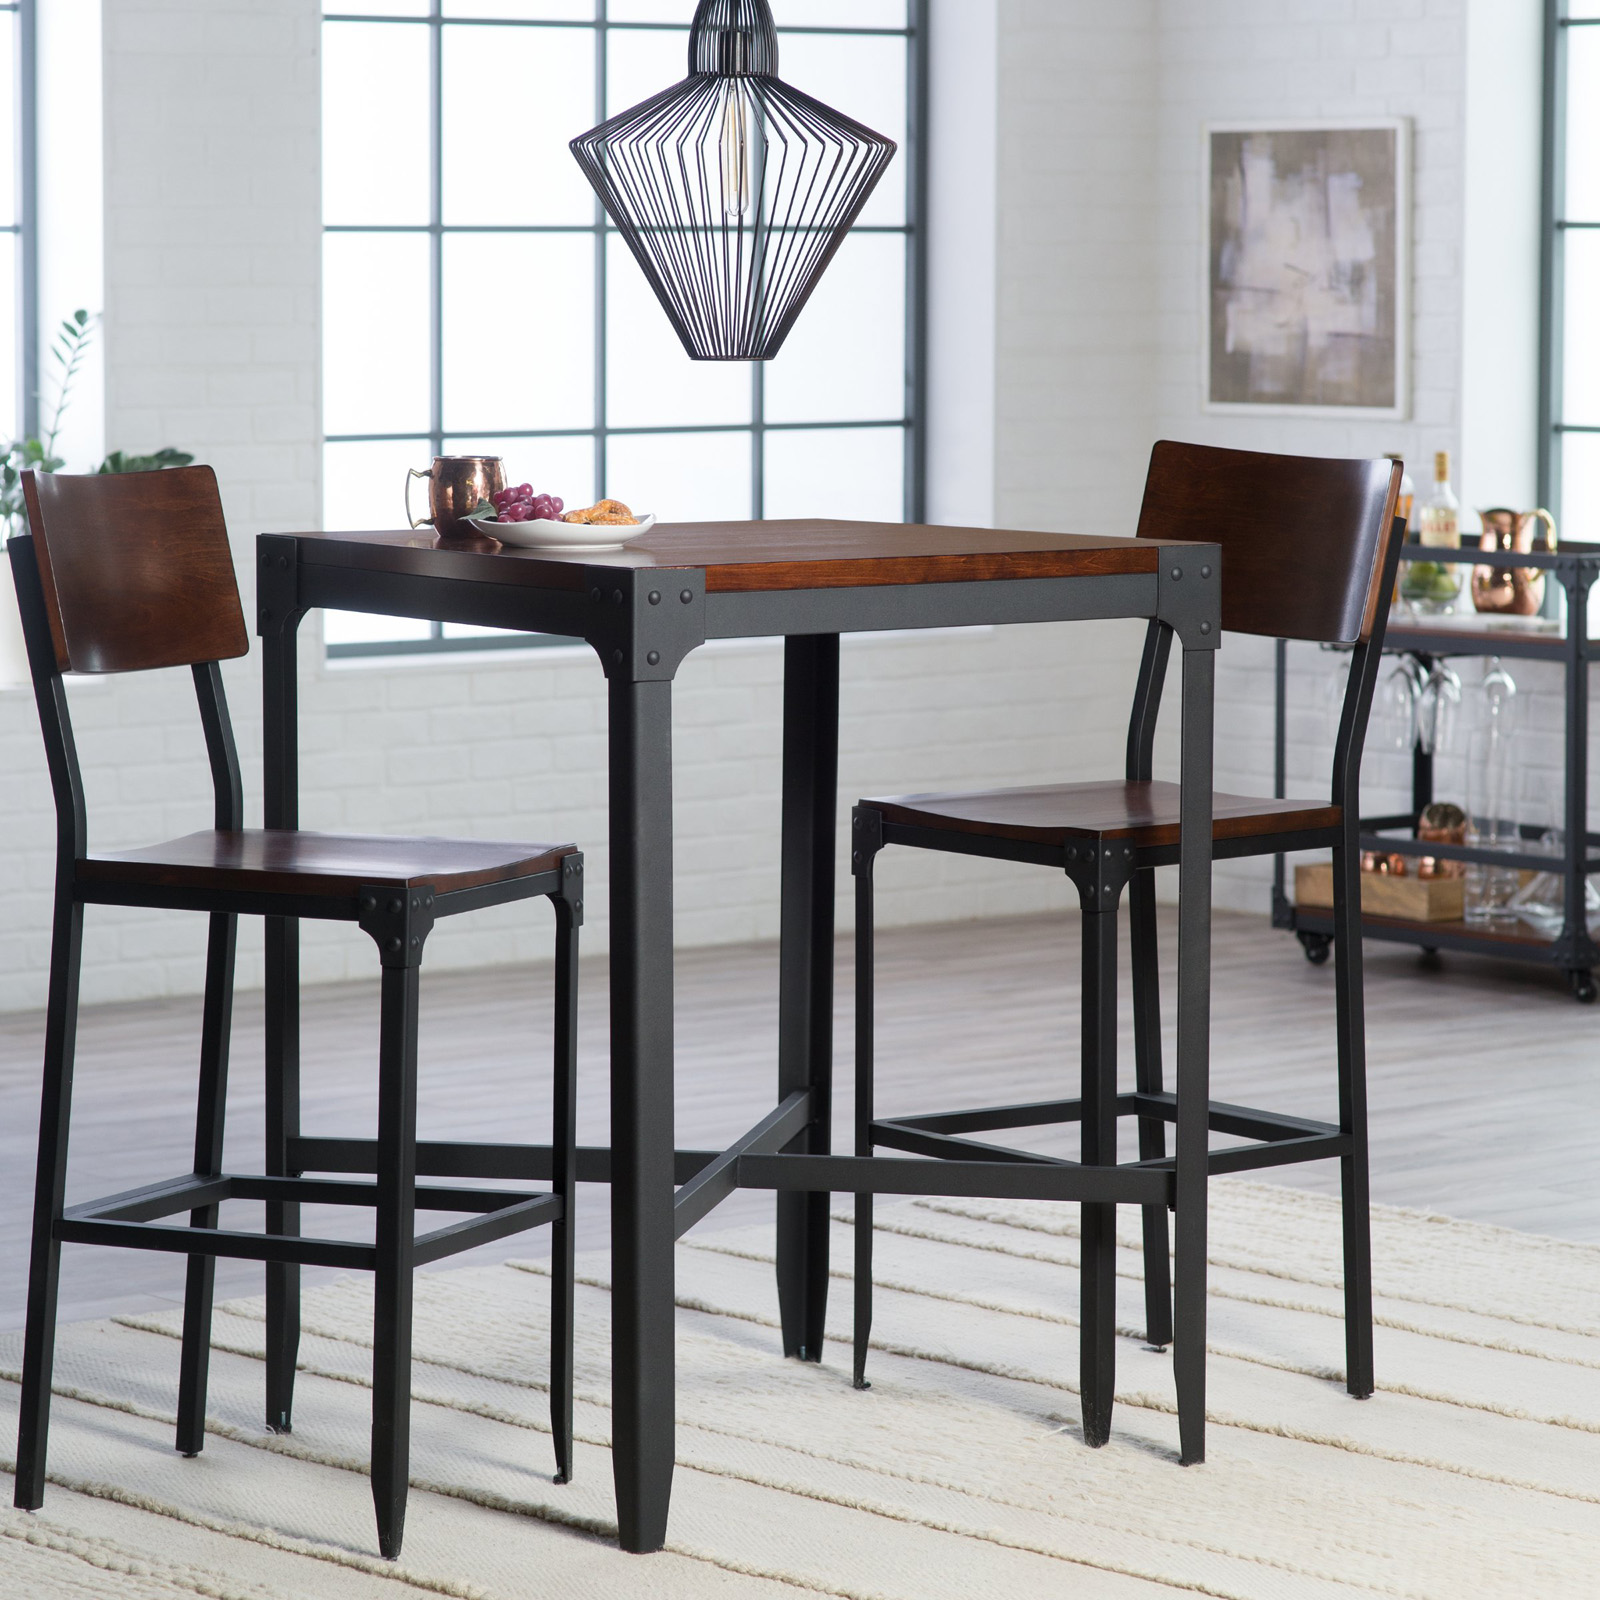 Finding The Perfect Pub Table Set For Any Room